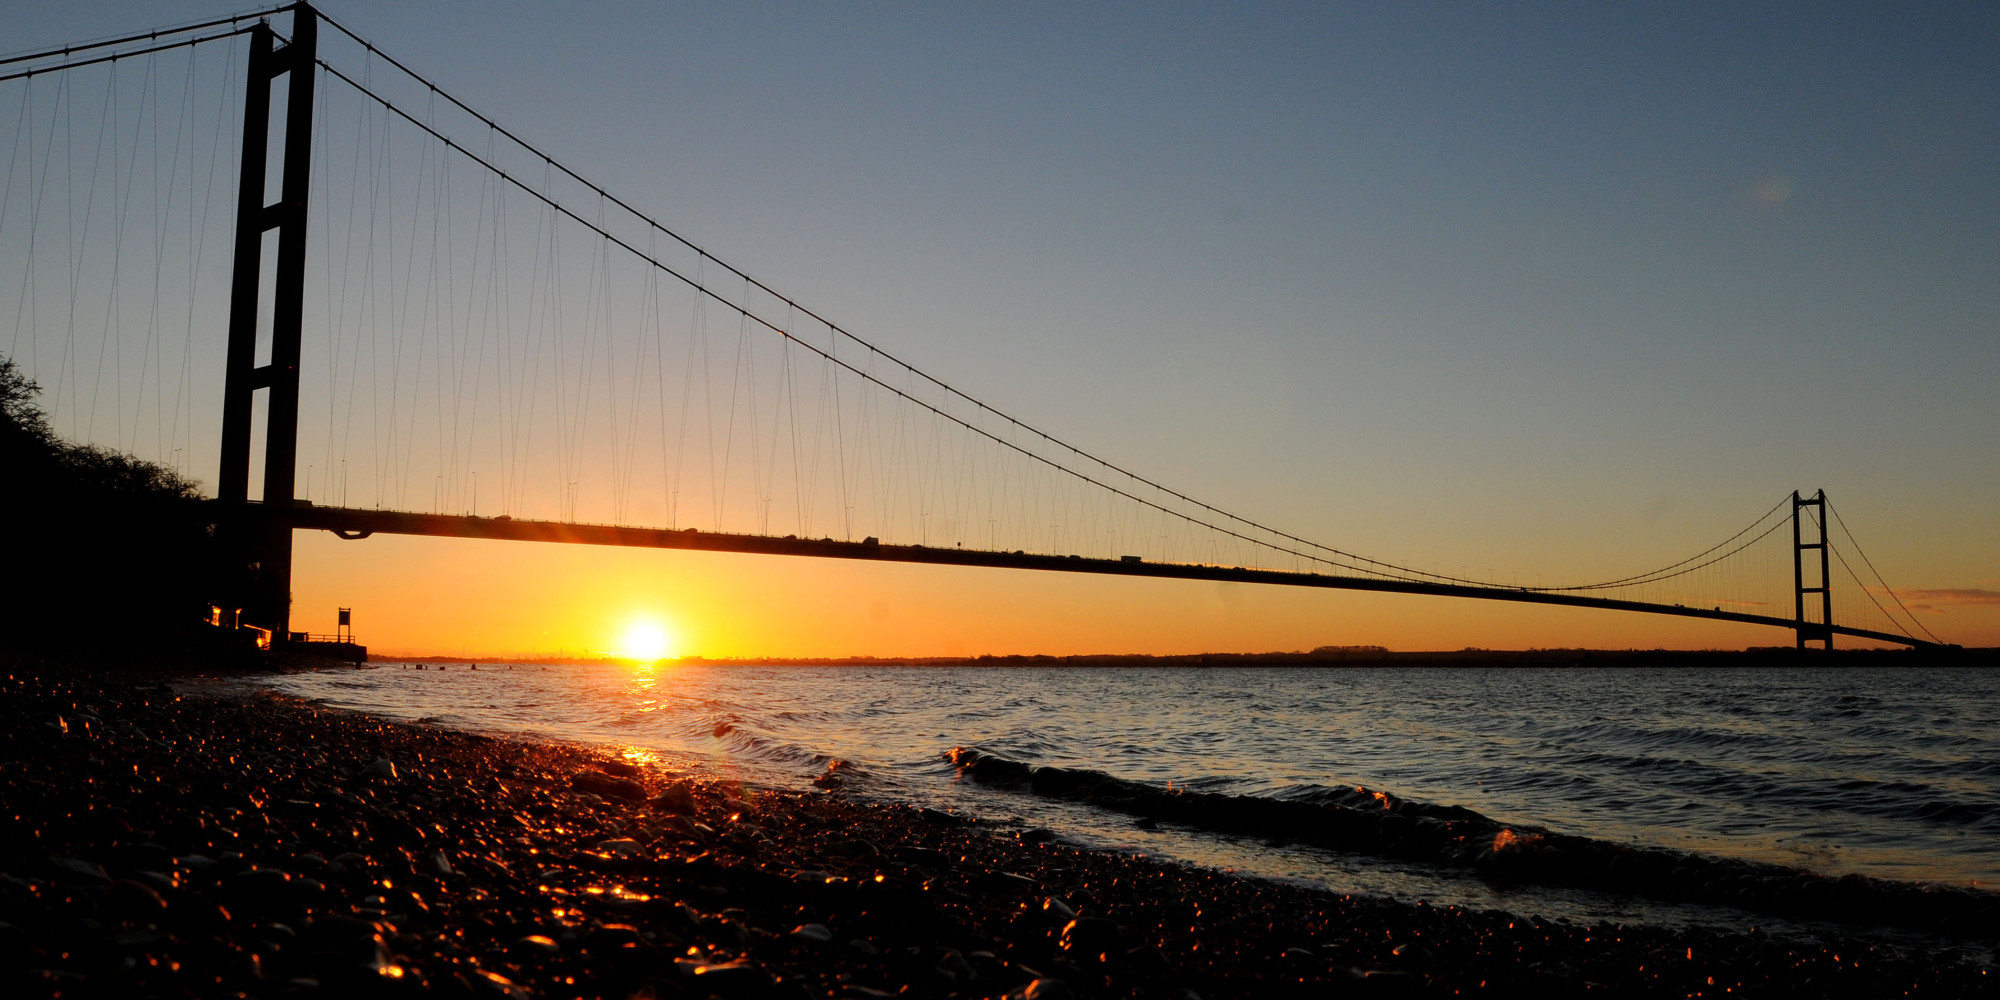 The sun rises behind the Humber Bridge near Hull, East Yorkshire.